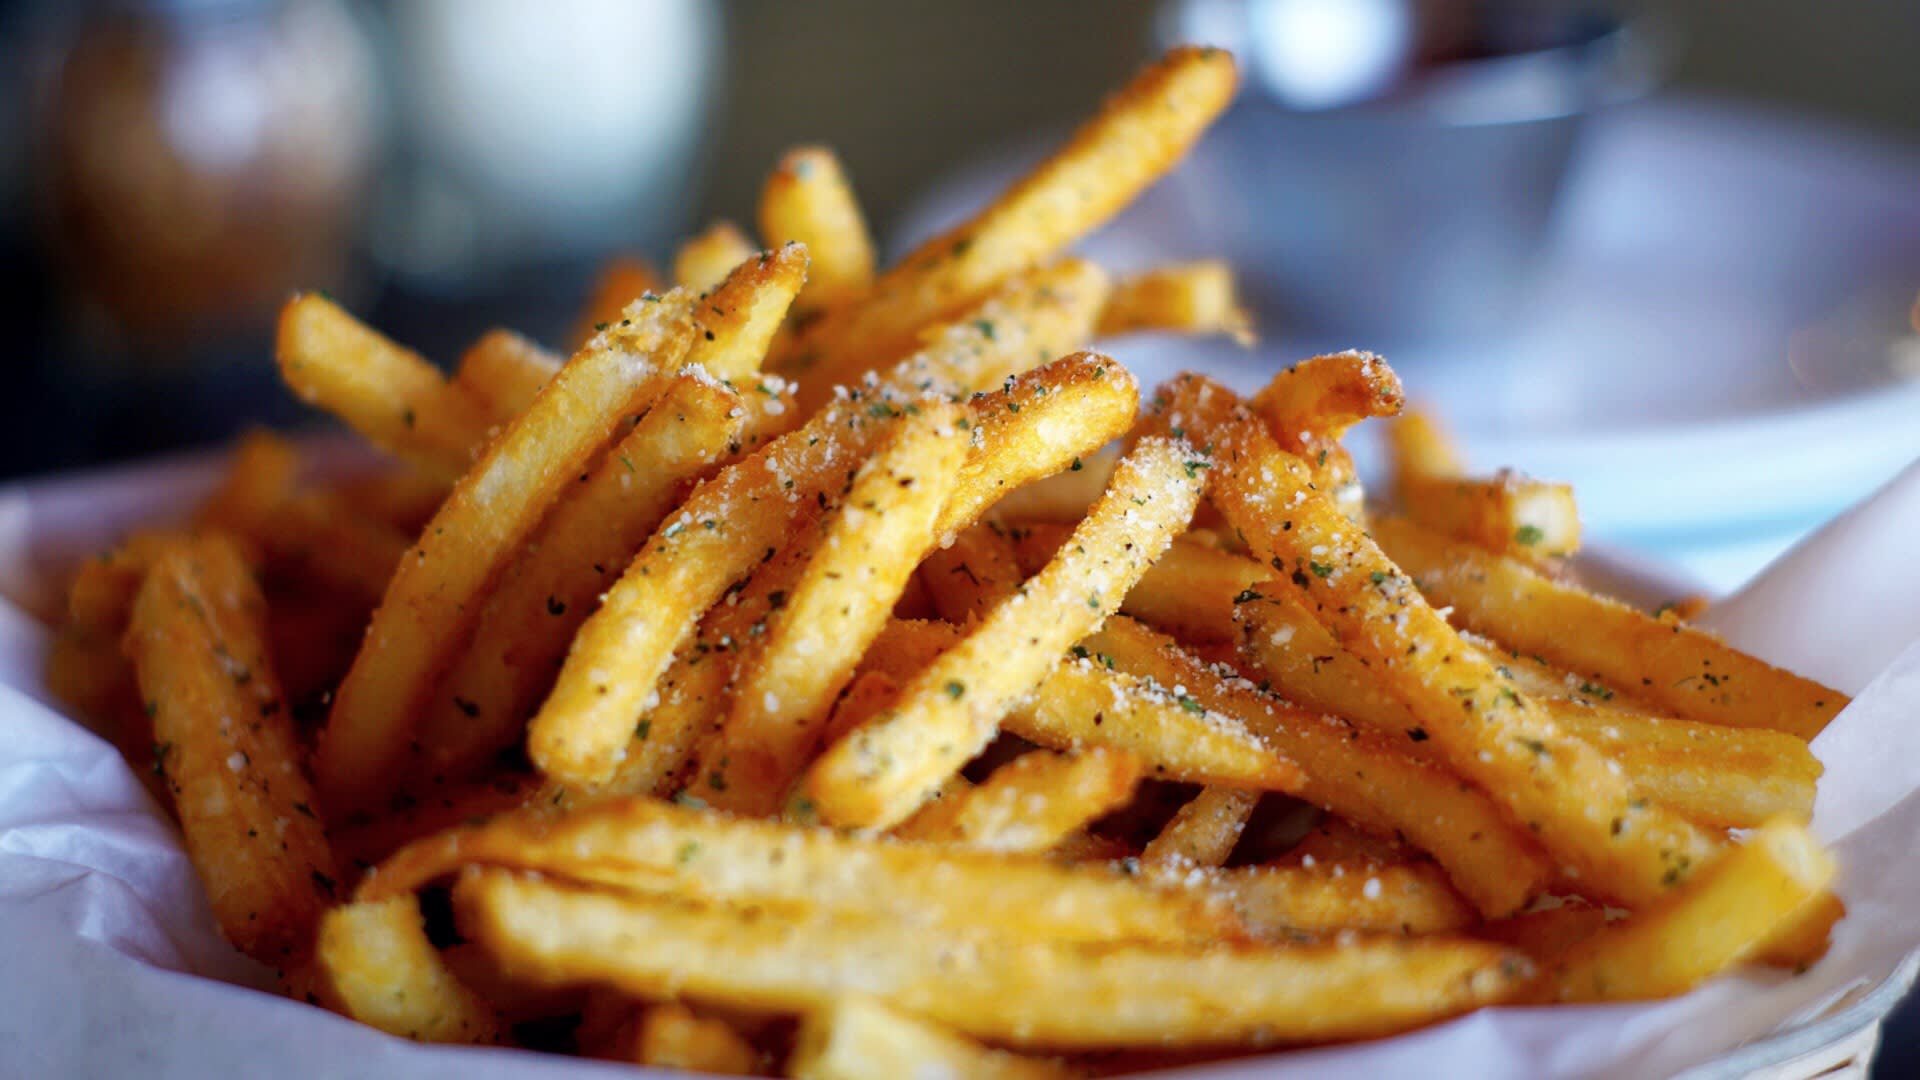 SEASONED STREETS FRIES